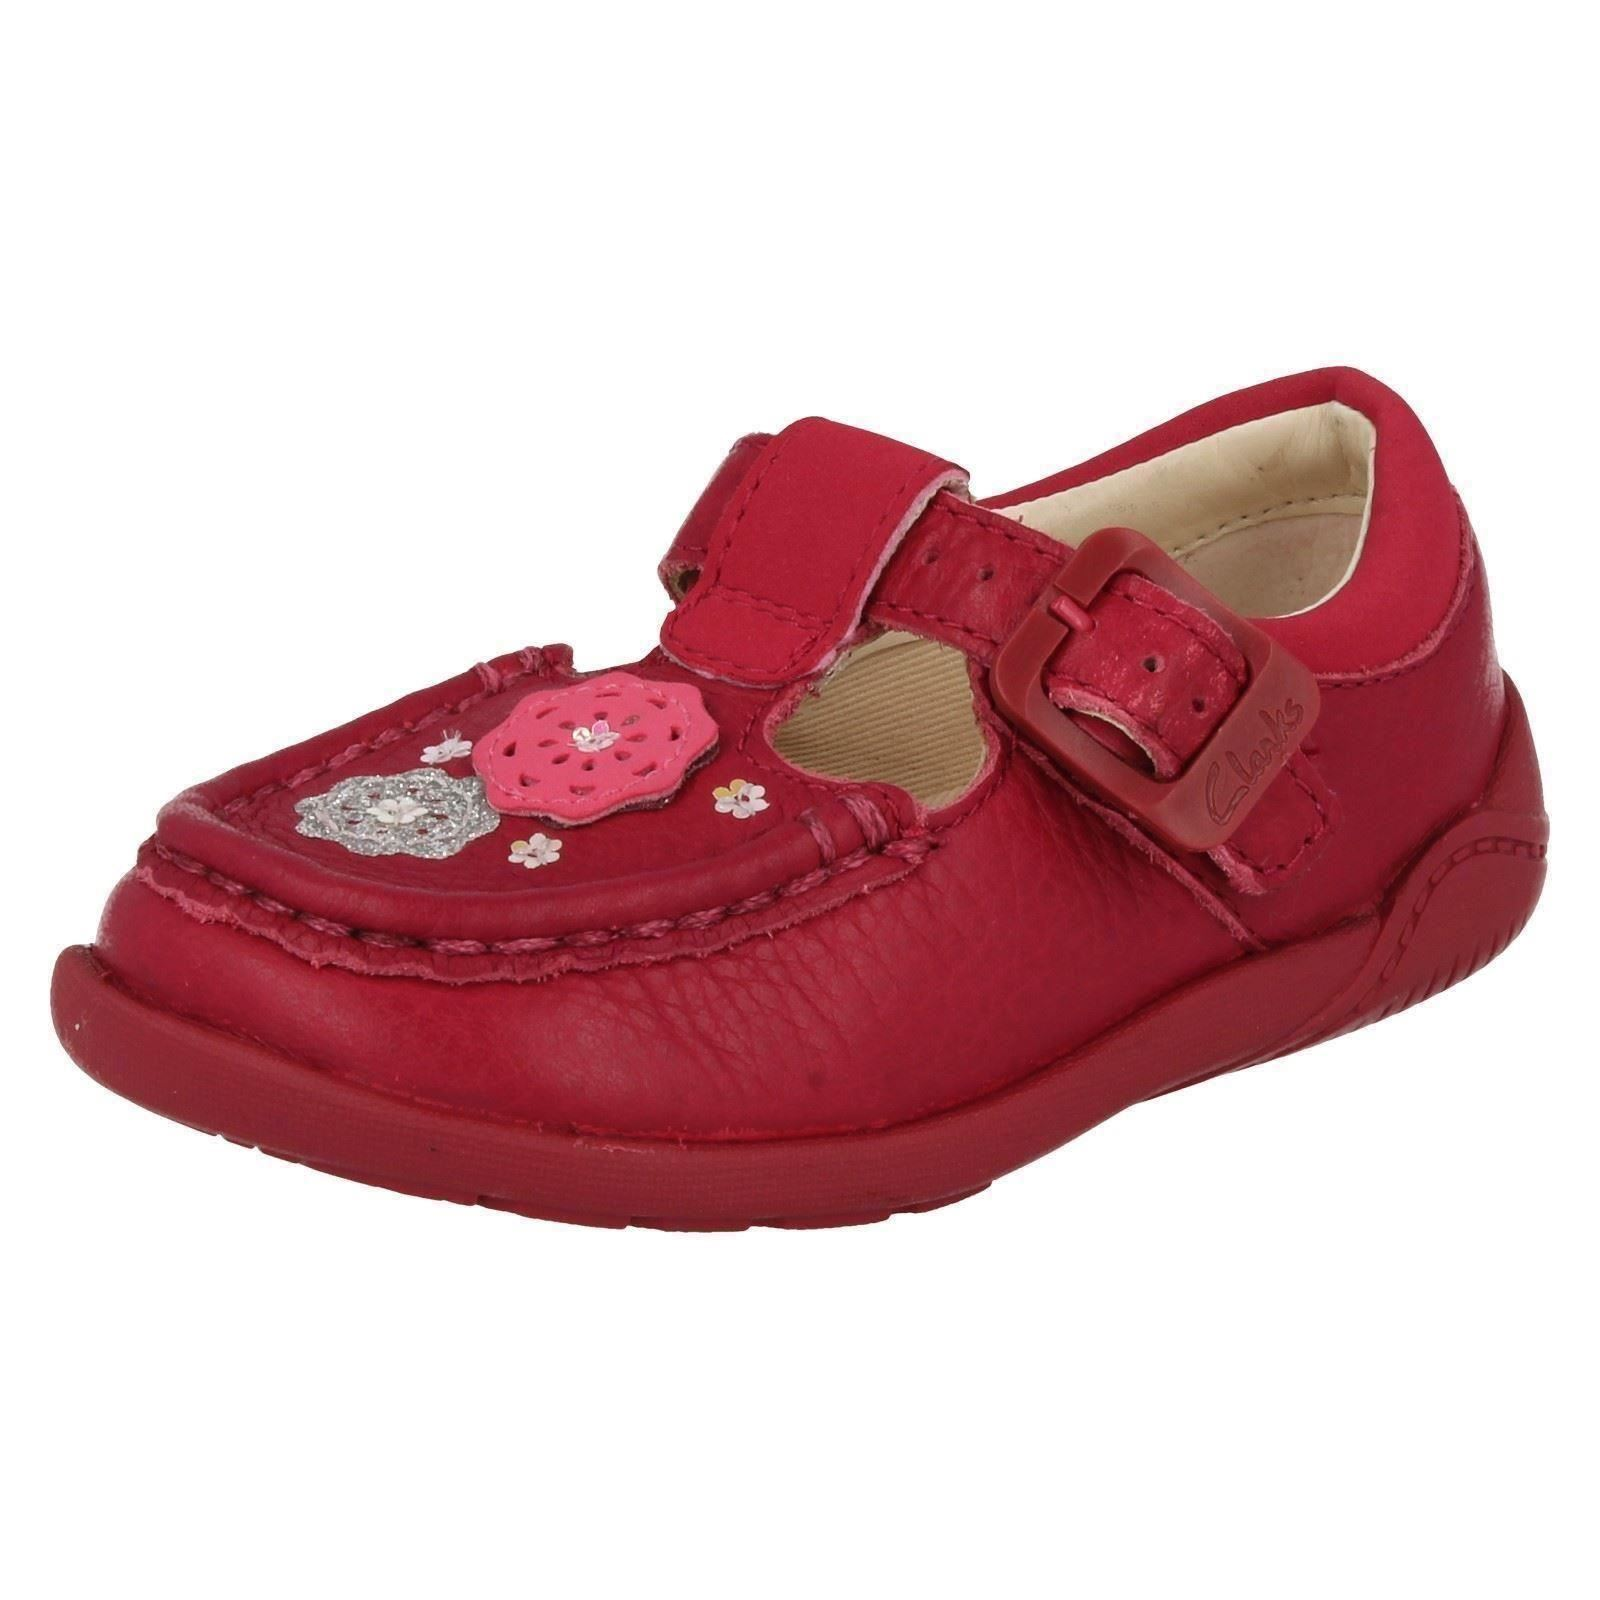 Girls Clarks Casual Shoes Litzy Suzy